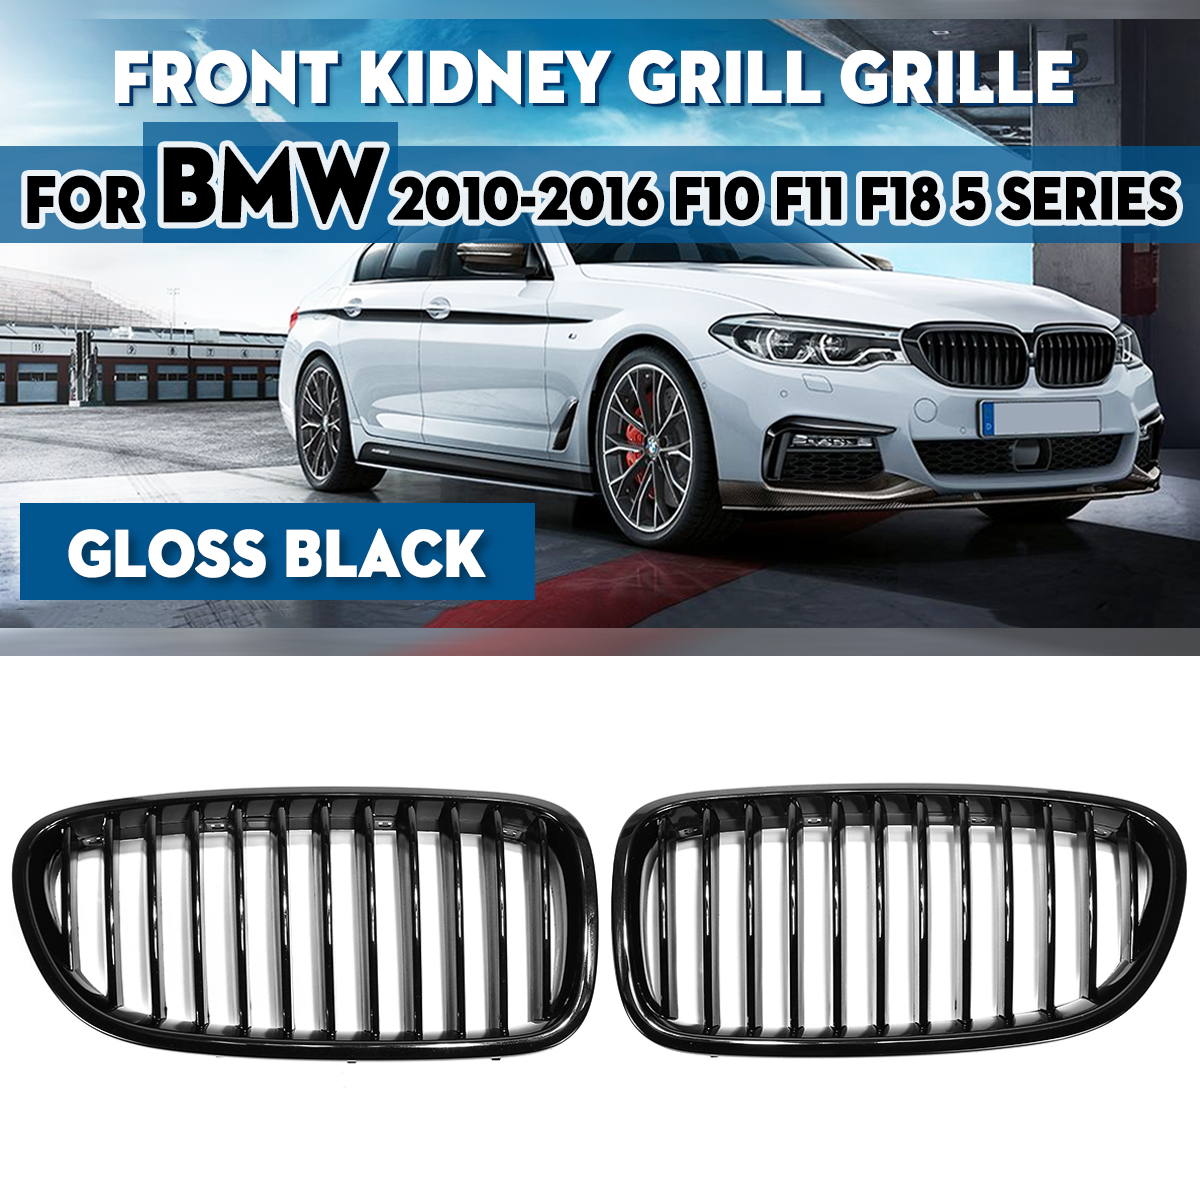 1 Pair Gloss Black Carbon Fiber M Color 1 Line Slat Front Bumper Kidney Grill For BMW F18 F10 F11 5 Series 2010 - 2016 image